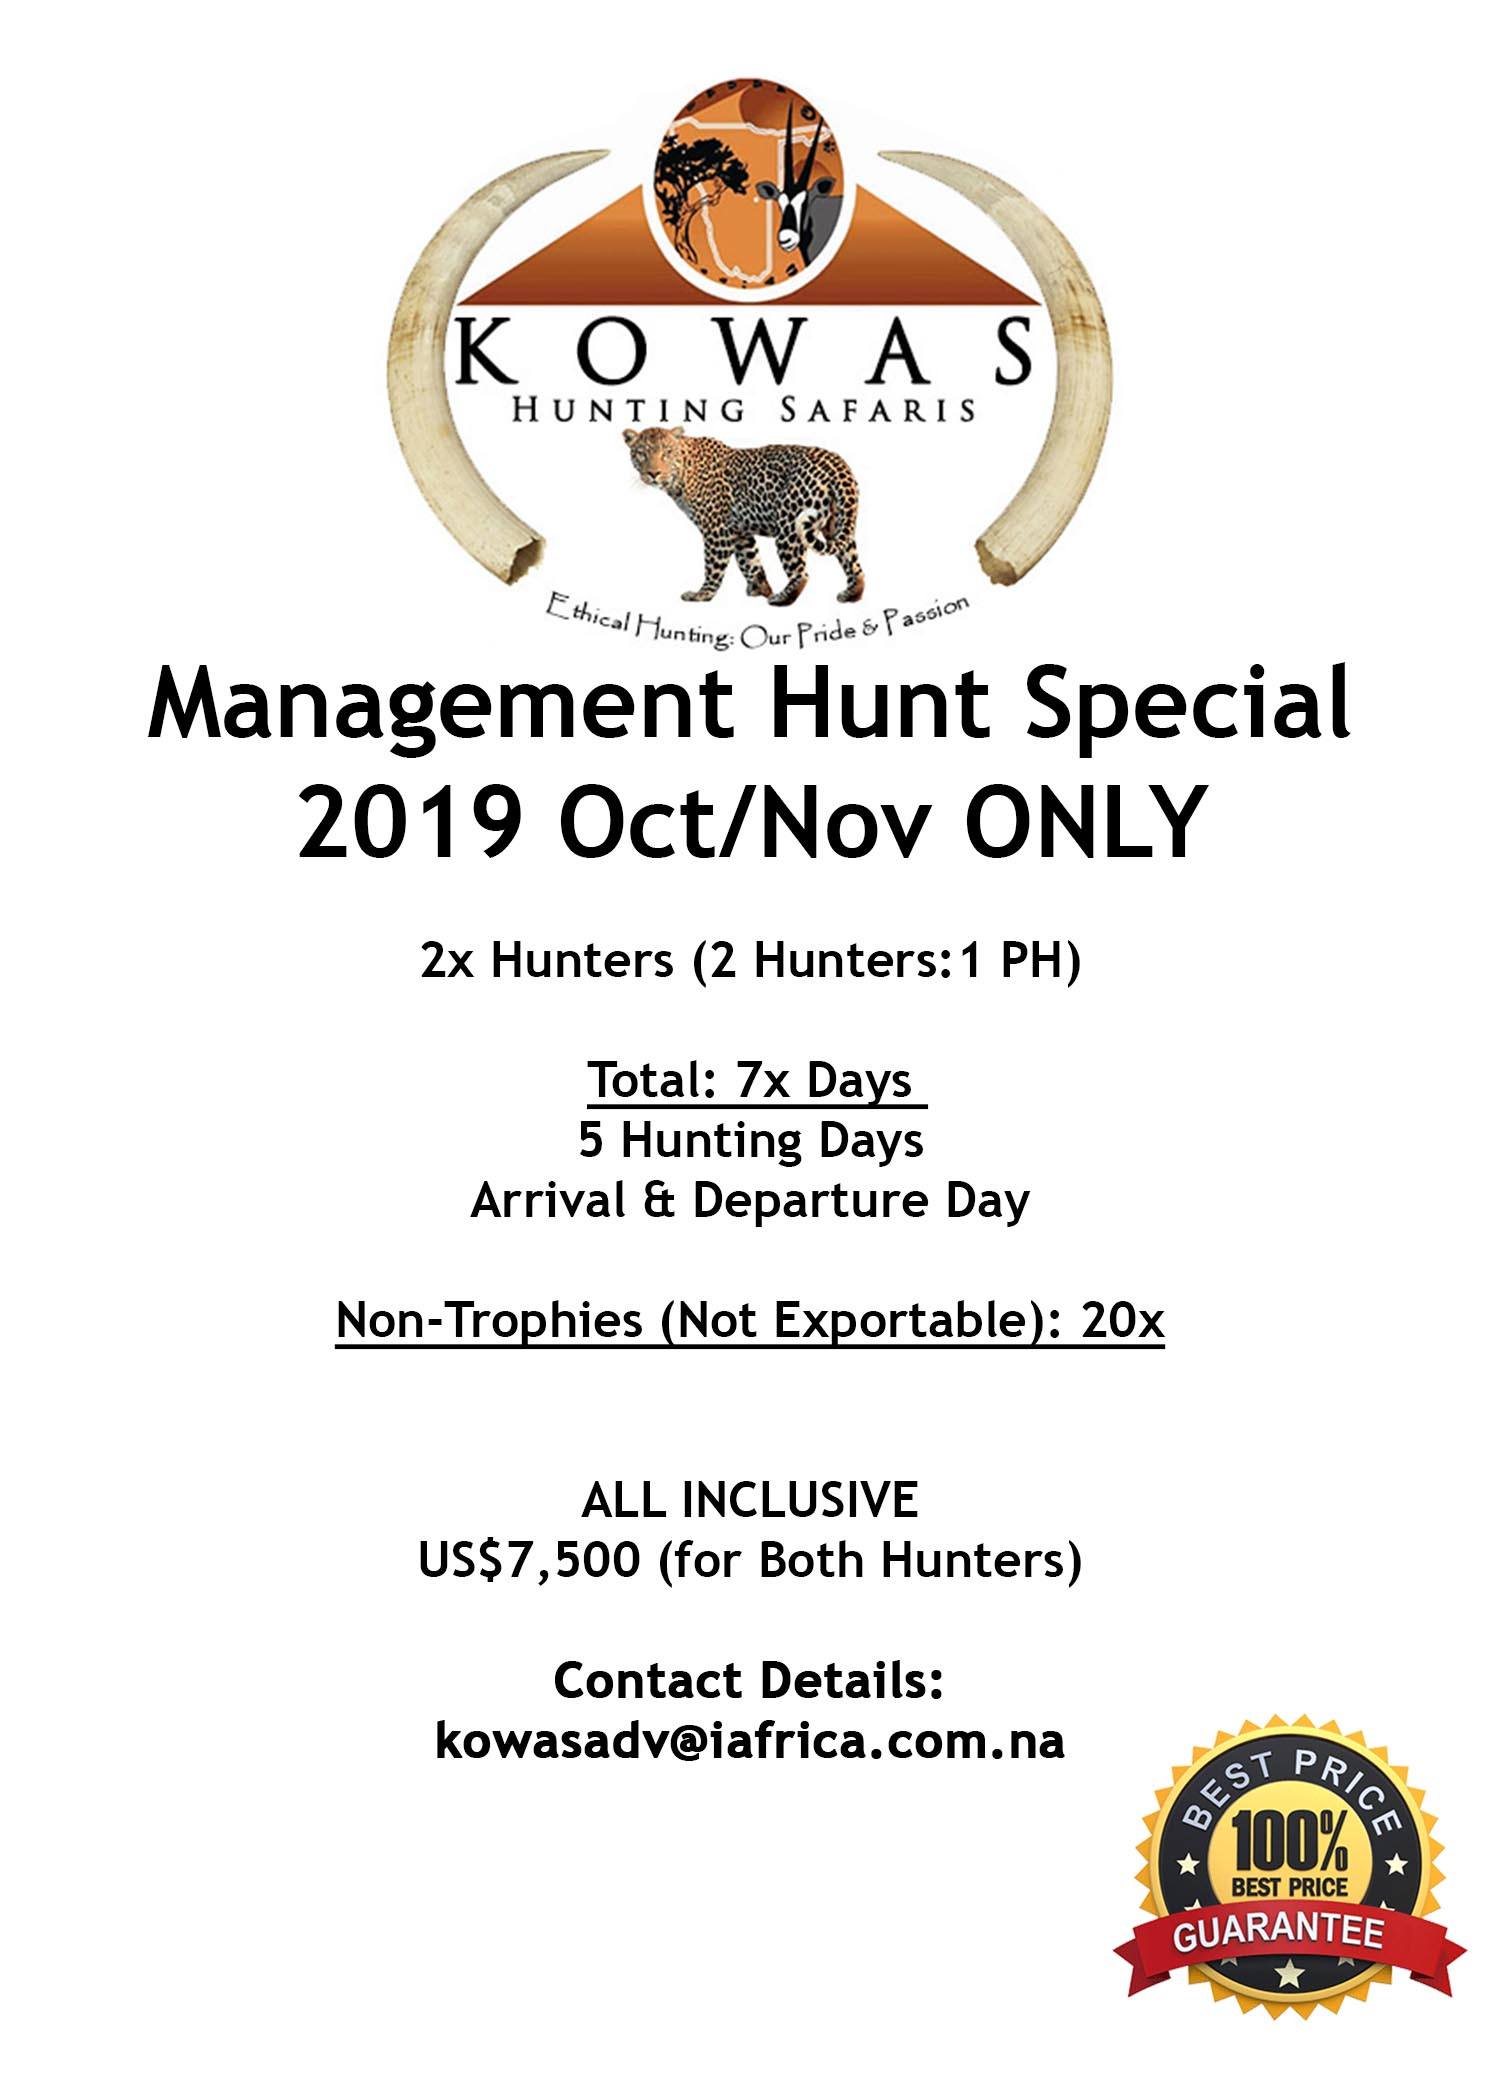 Management Hunt Special - Nov Oct 2019.jpg